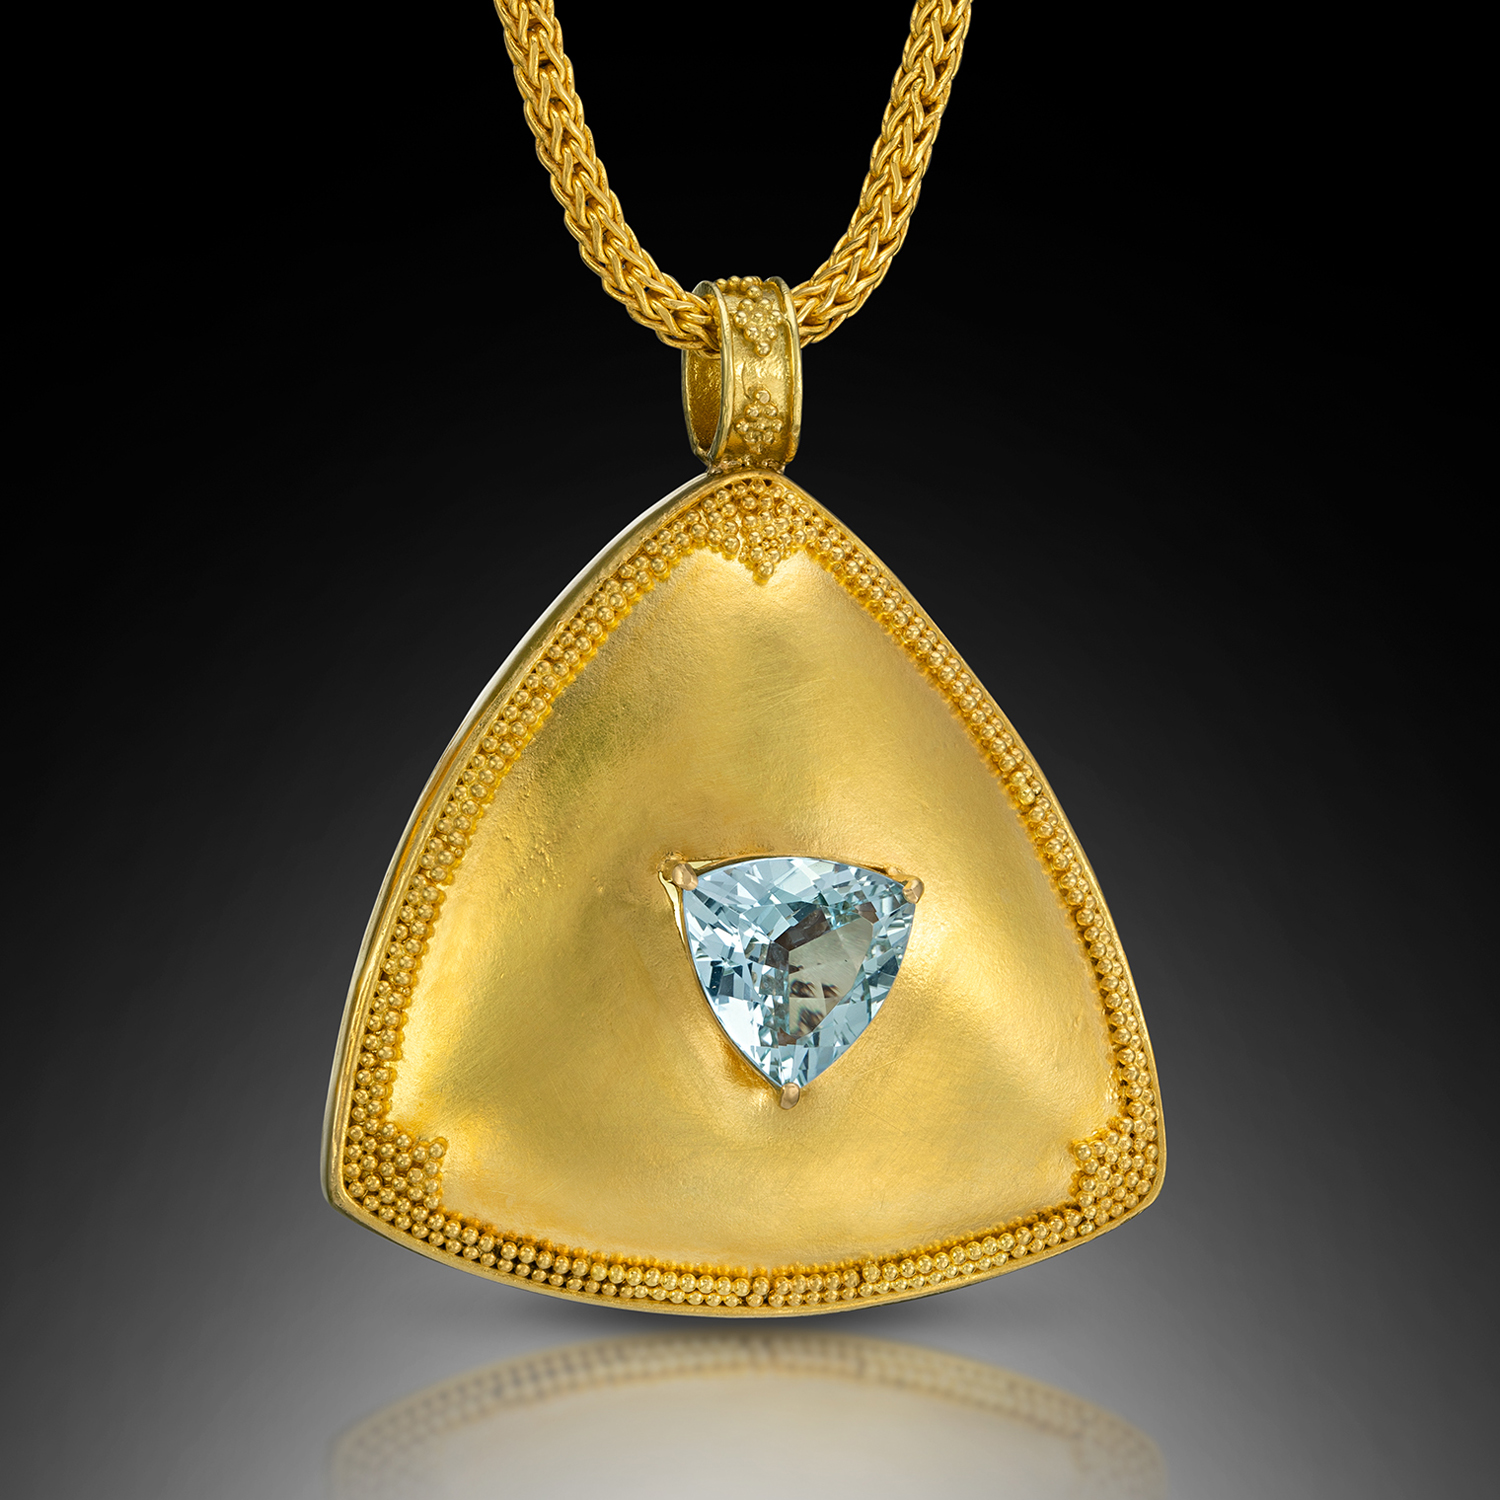 Cleopatra Pendant, 22k granulated and 18k gold and aquamarine, chain sold separately (# 1172)